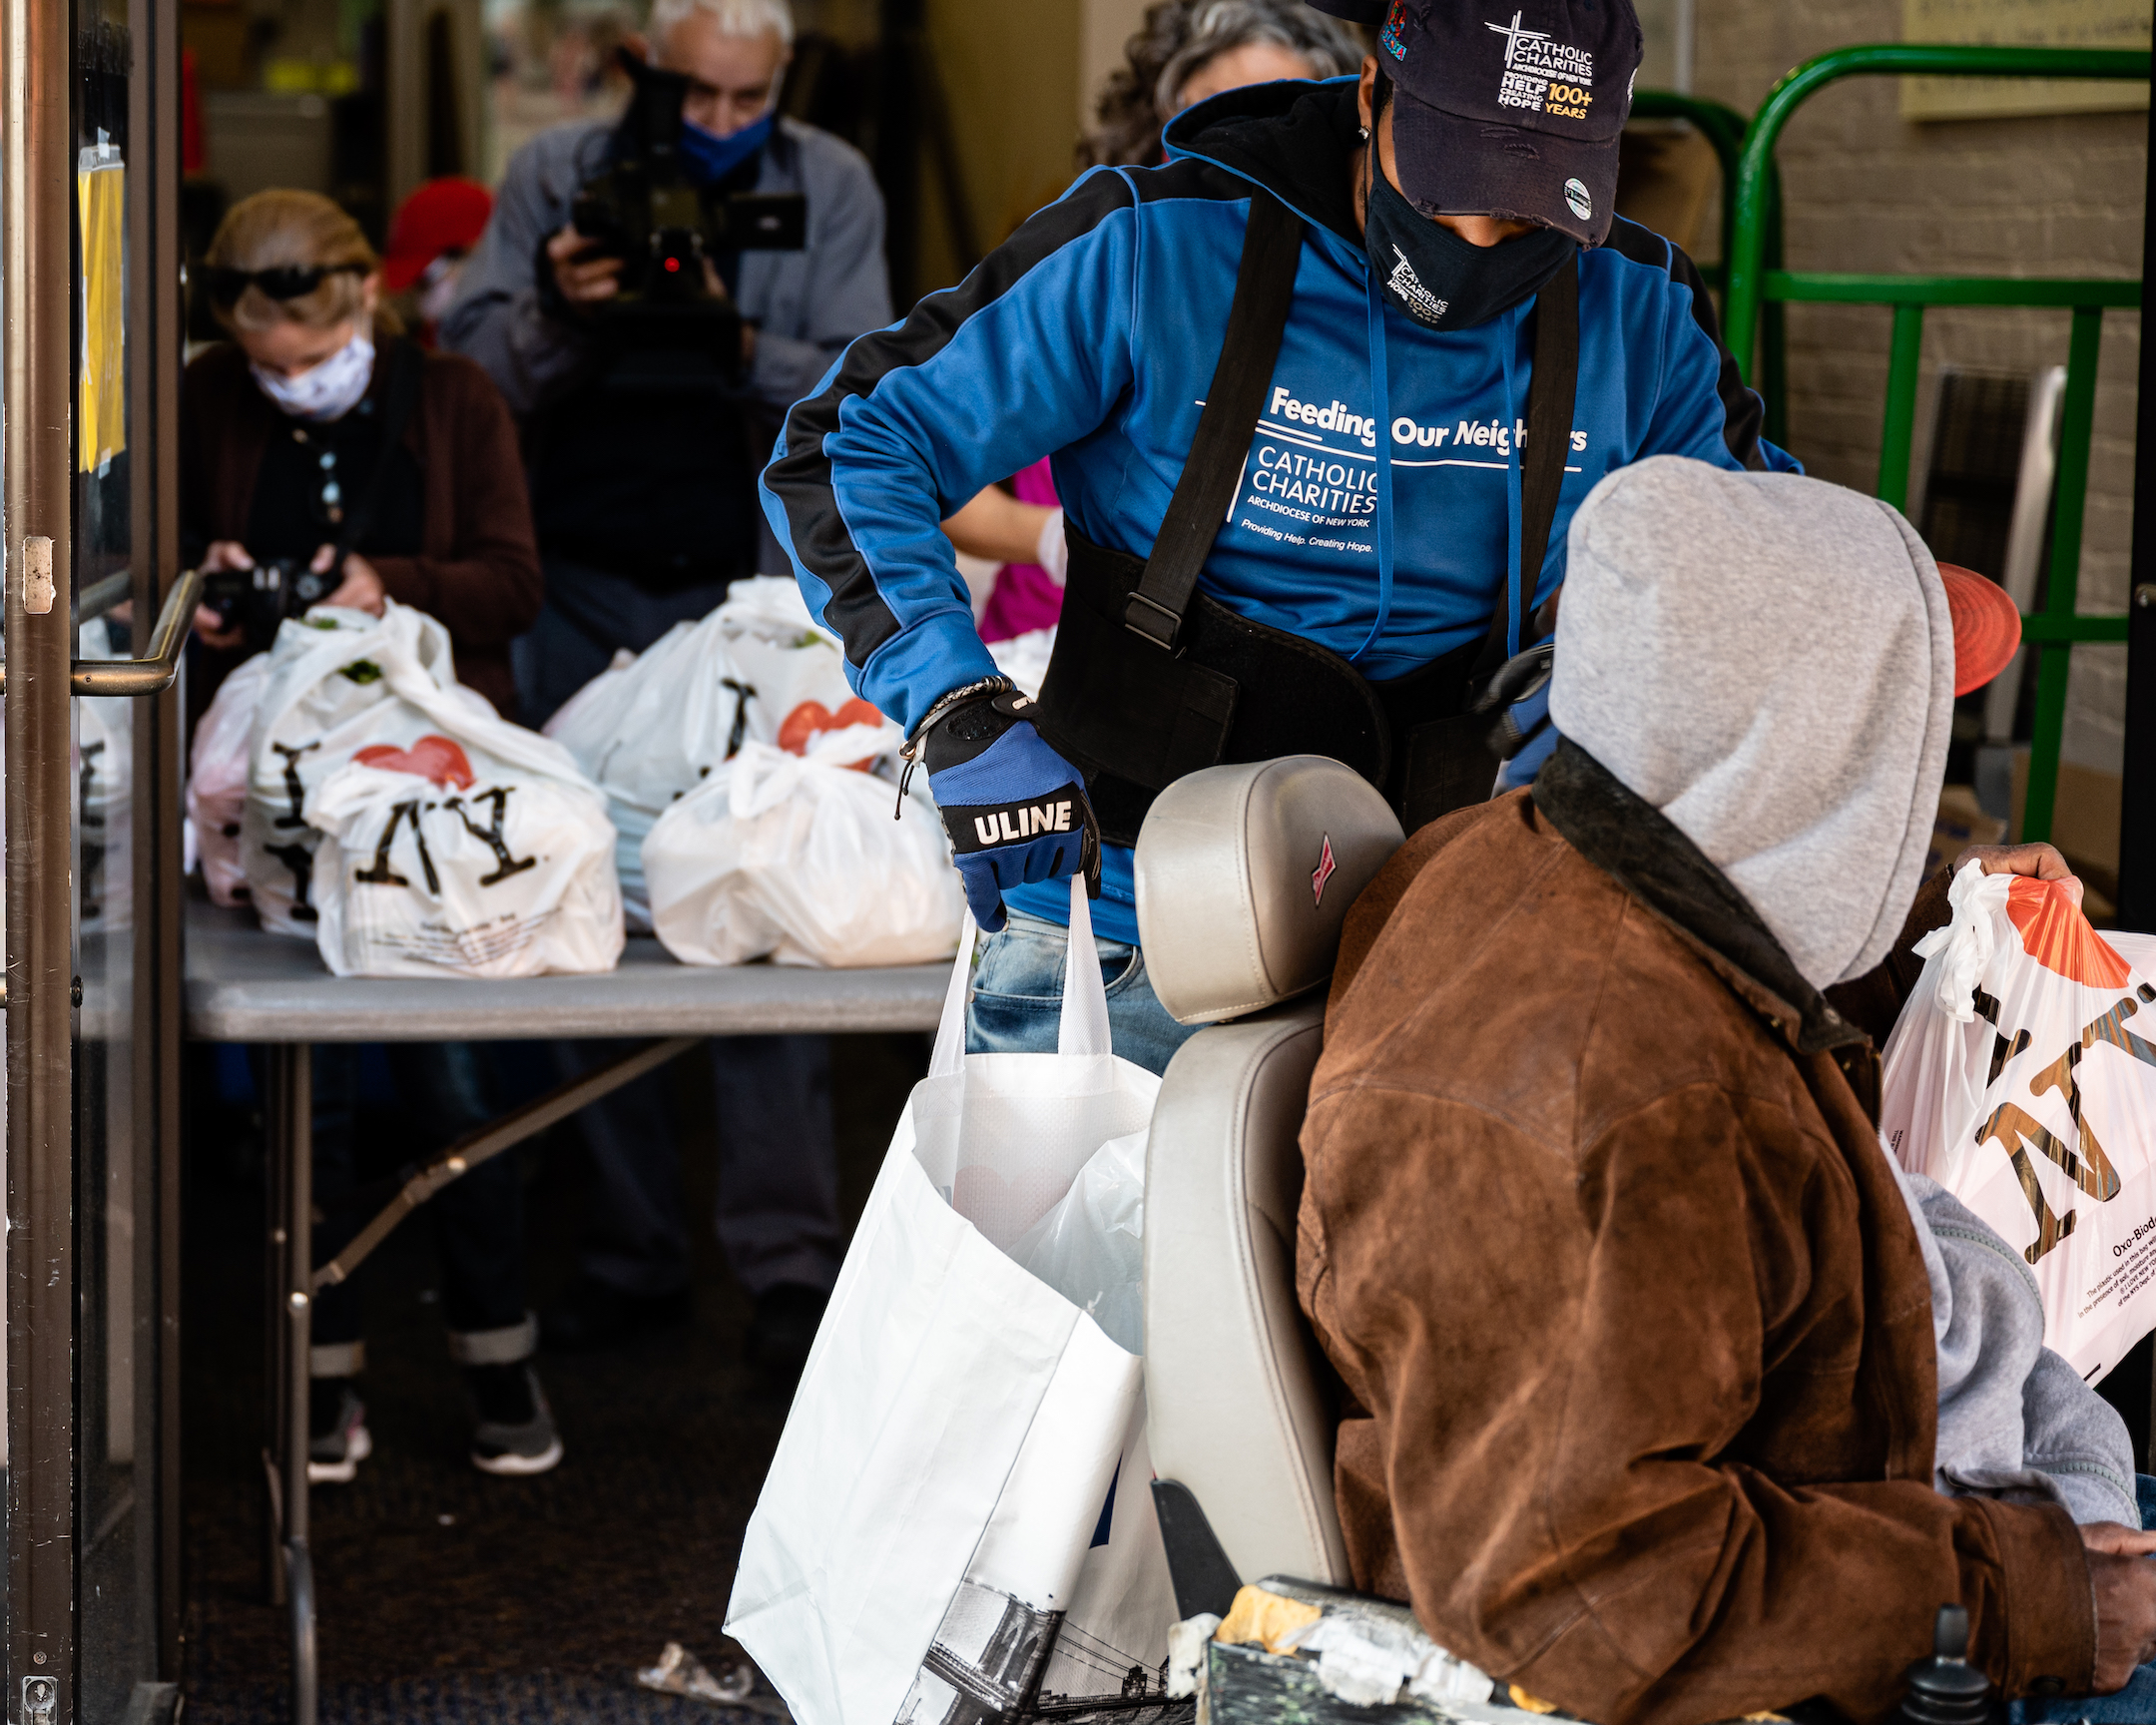 Workers at Catholic Charities in the Bronx distribute food to those in need. Throughout the pandemic, the archdiocese served vulnerable communities through 188 pop-up pantries in parishes and other locations, as well as provided more than 1 million meals were distributed by November 2020. [Johnny Zhang]